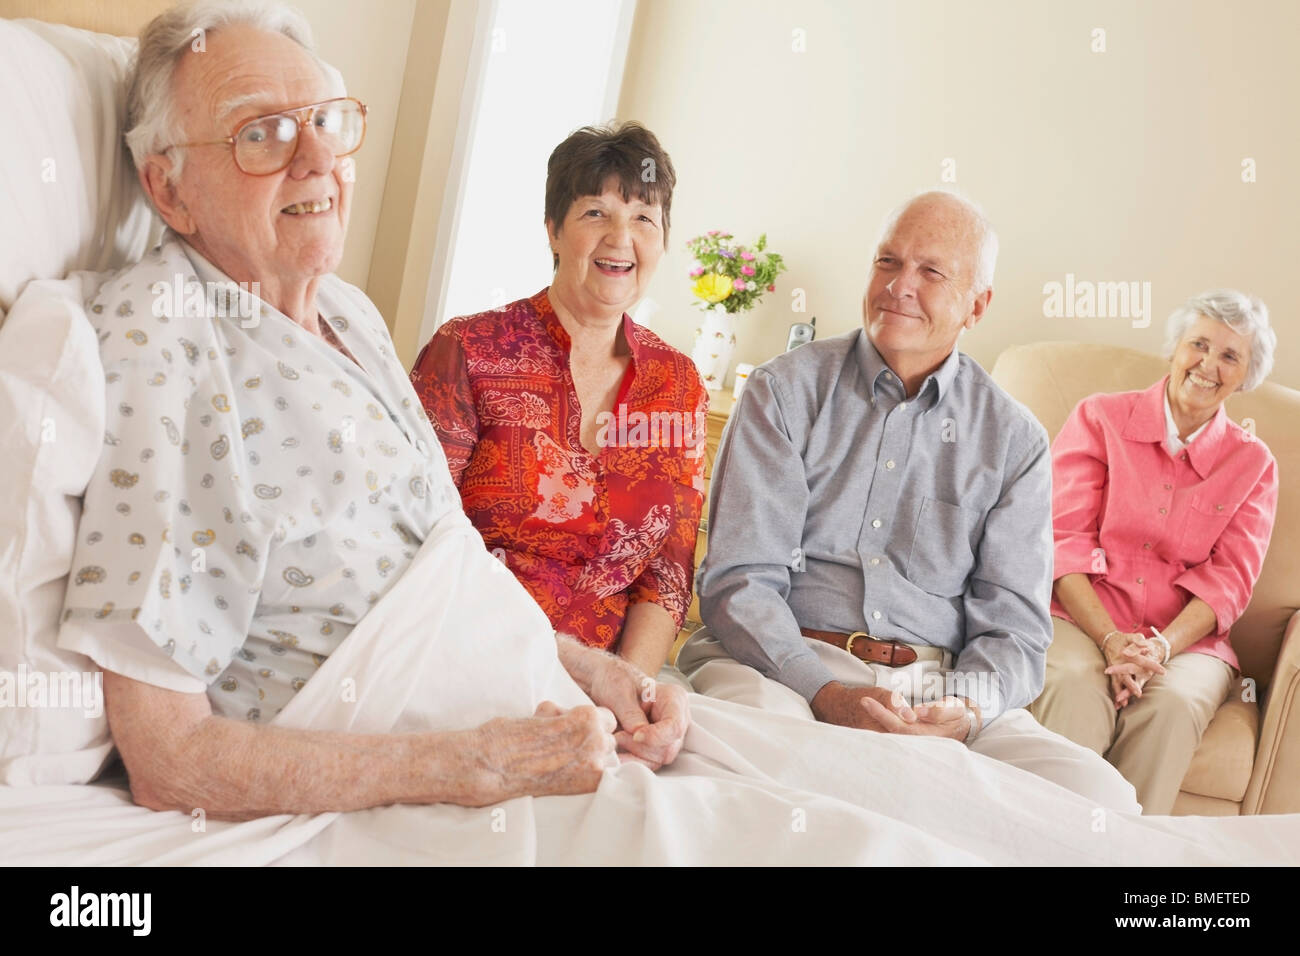 Visiting An Elderly Father In The Hospital - Stock Image